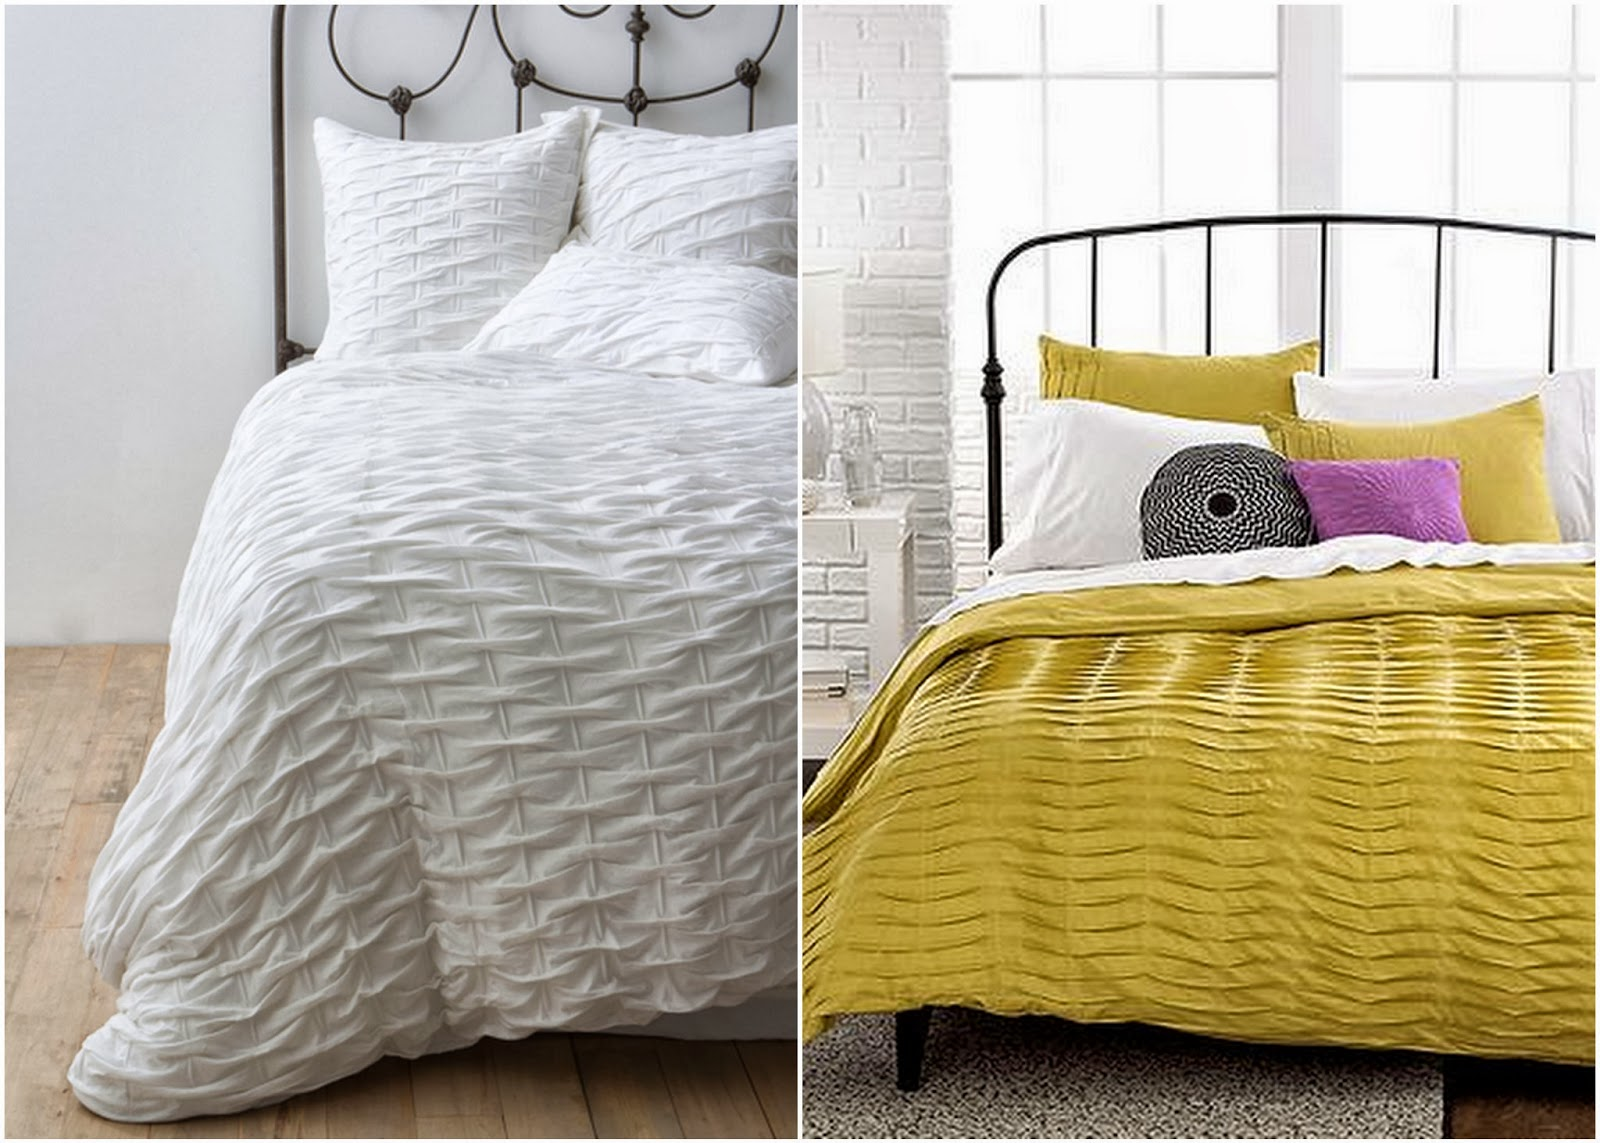 Anthropologie bedding - Affordable Anthropologie Bedding Knockoffs